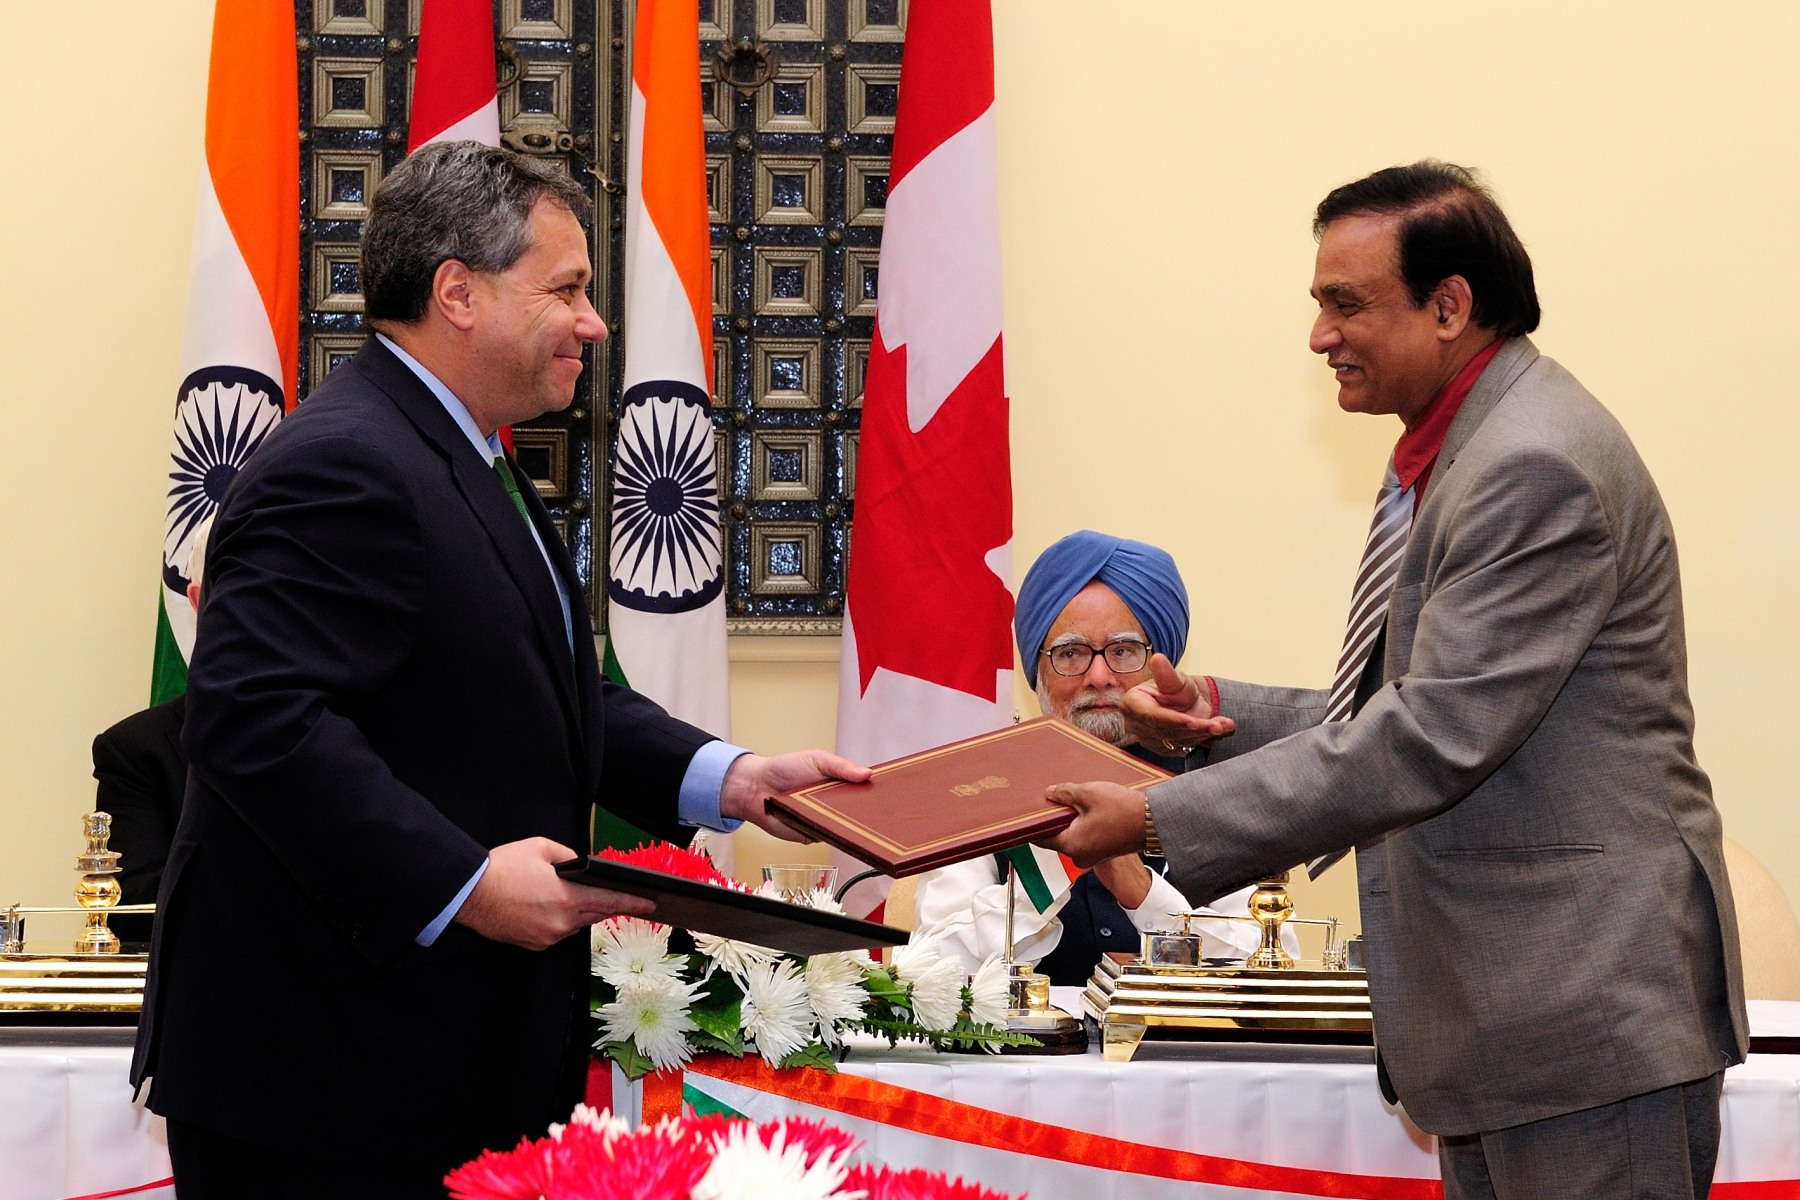 After the meeting, the Prime Minister and the Governor General witnessed the signing of new agreements between Canada and India.